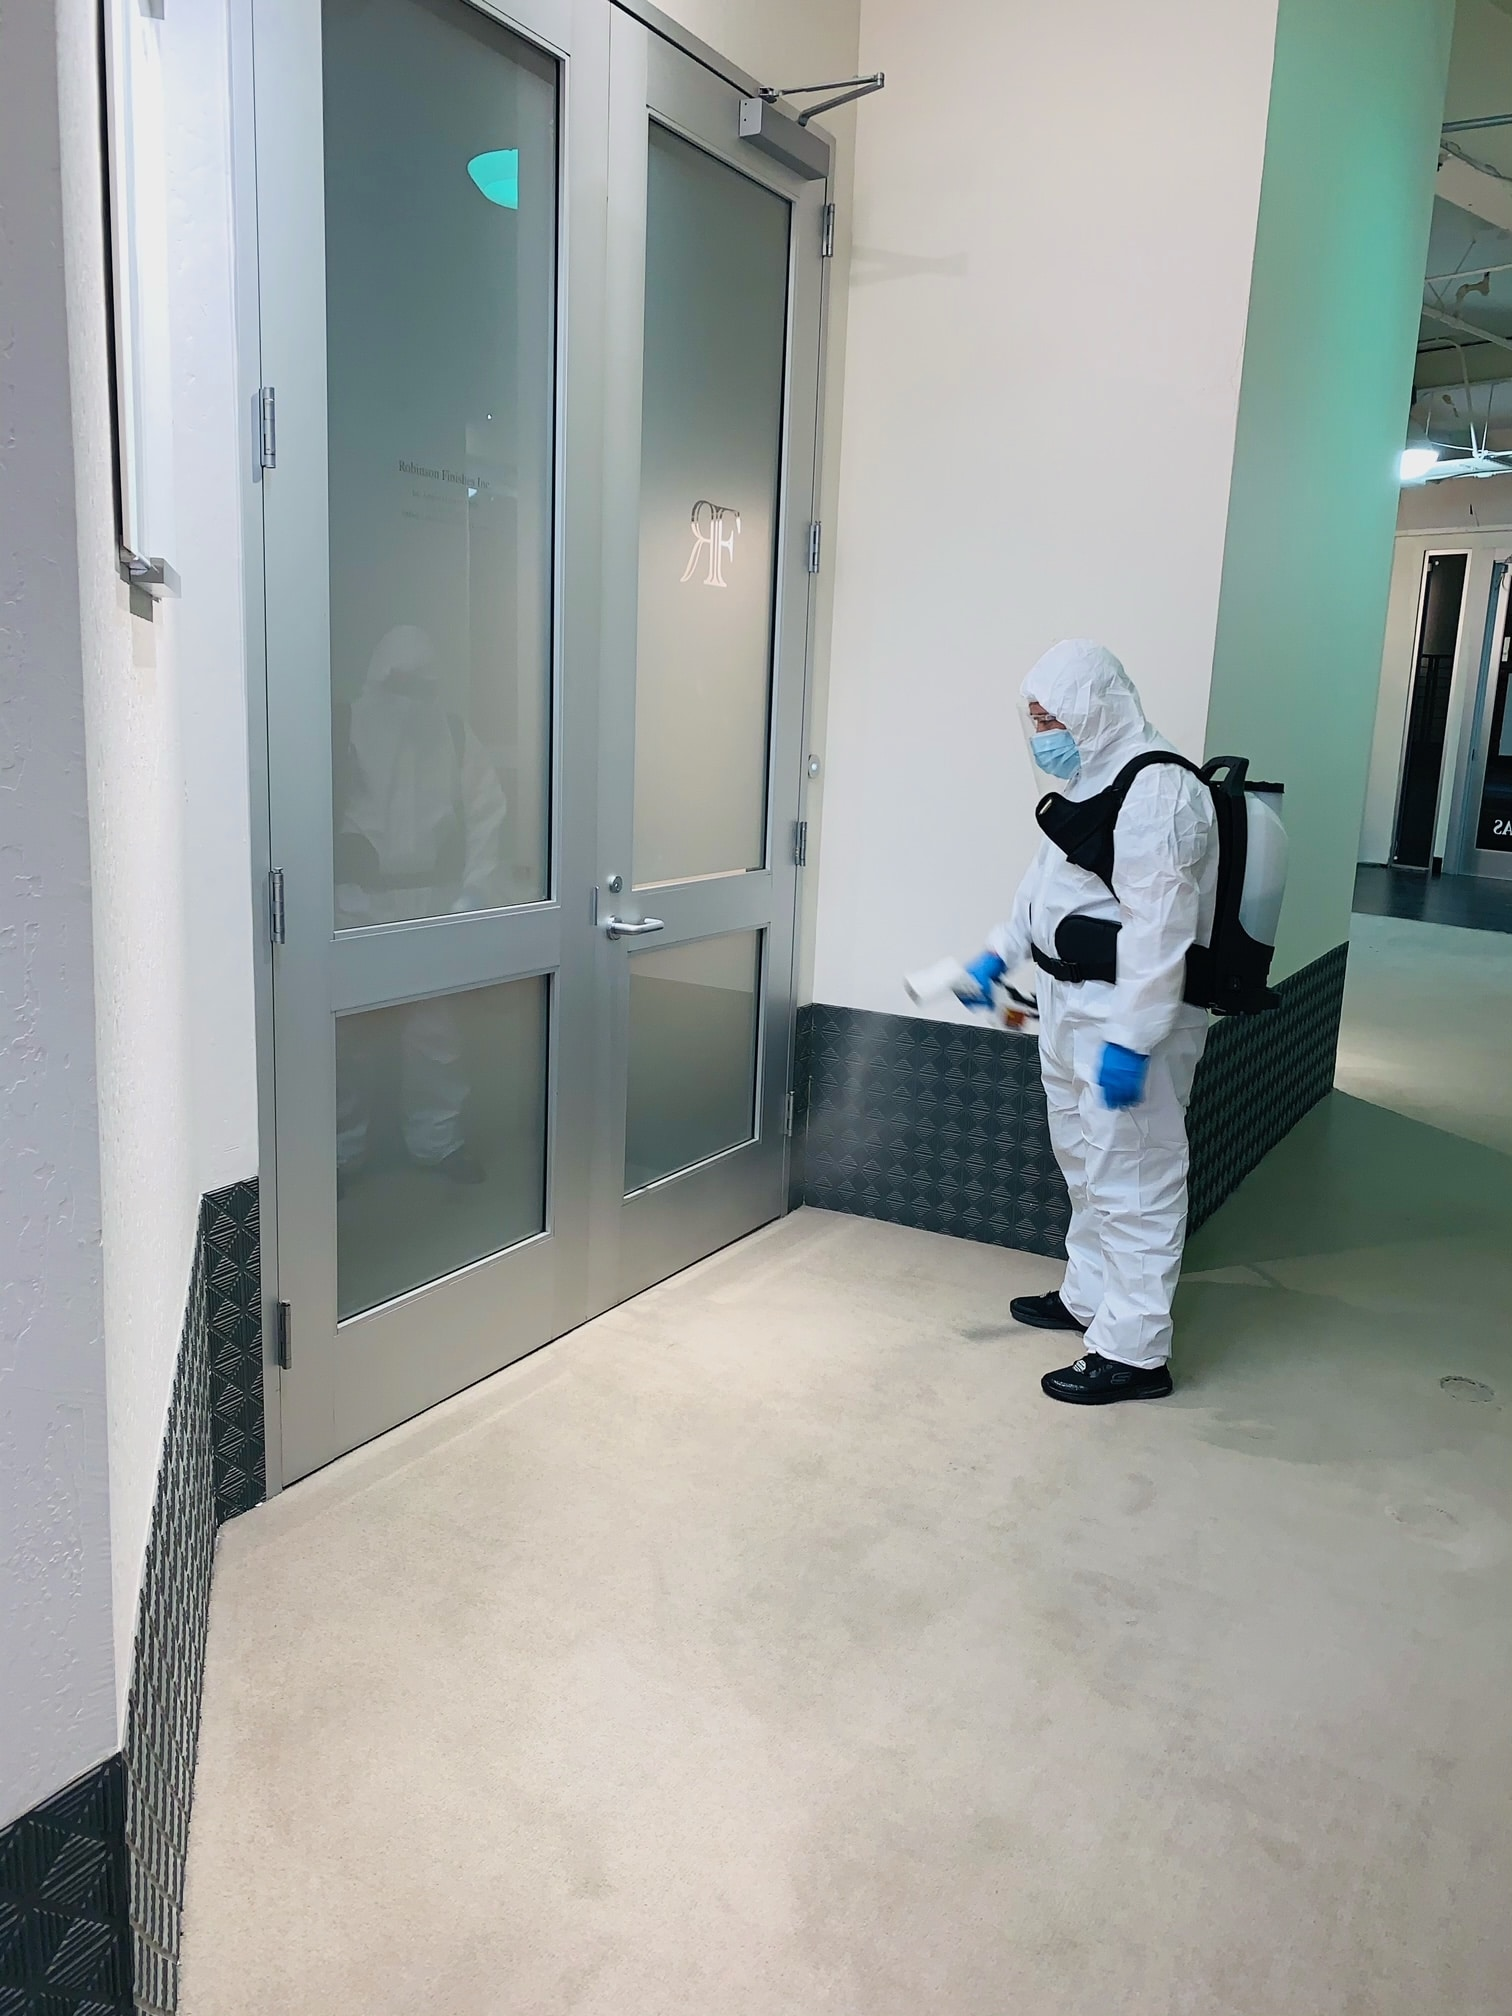 A professional disinfecting a doorway